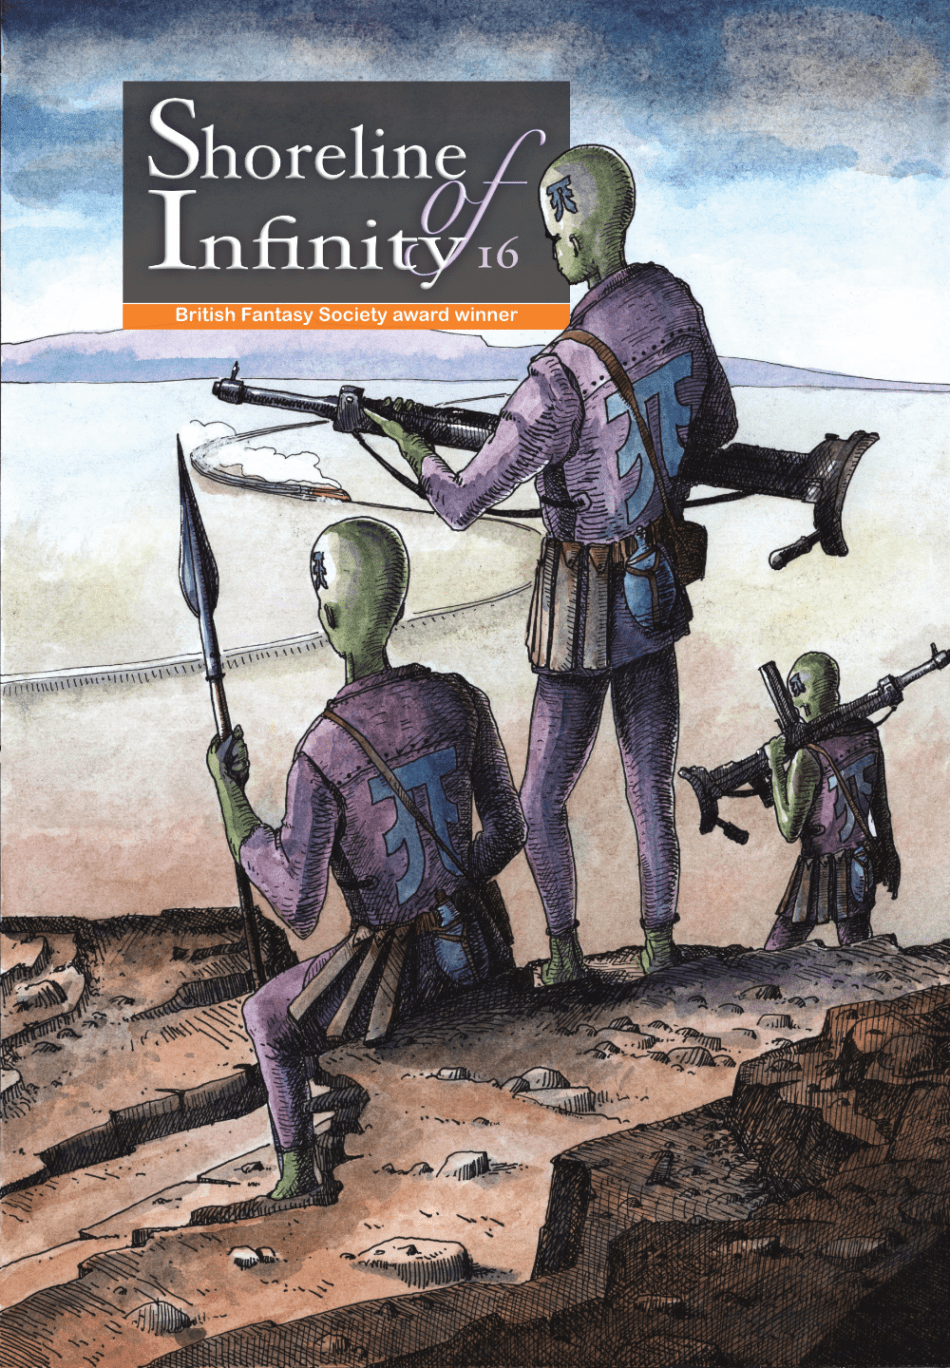 Shoreline-of-Infinity-16-front-cover-1000w